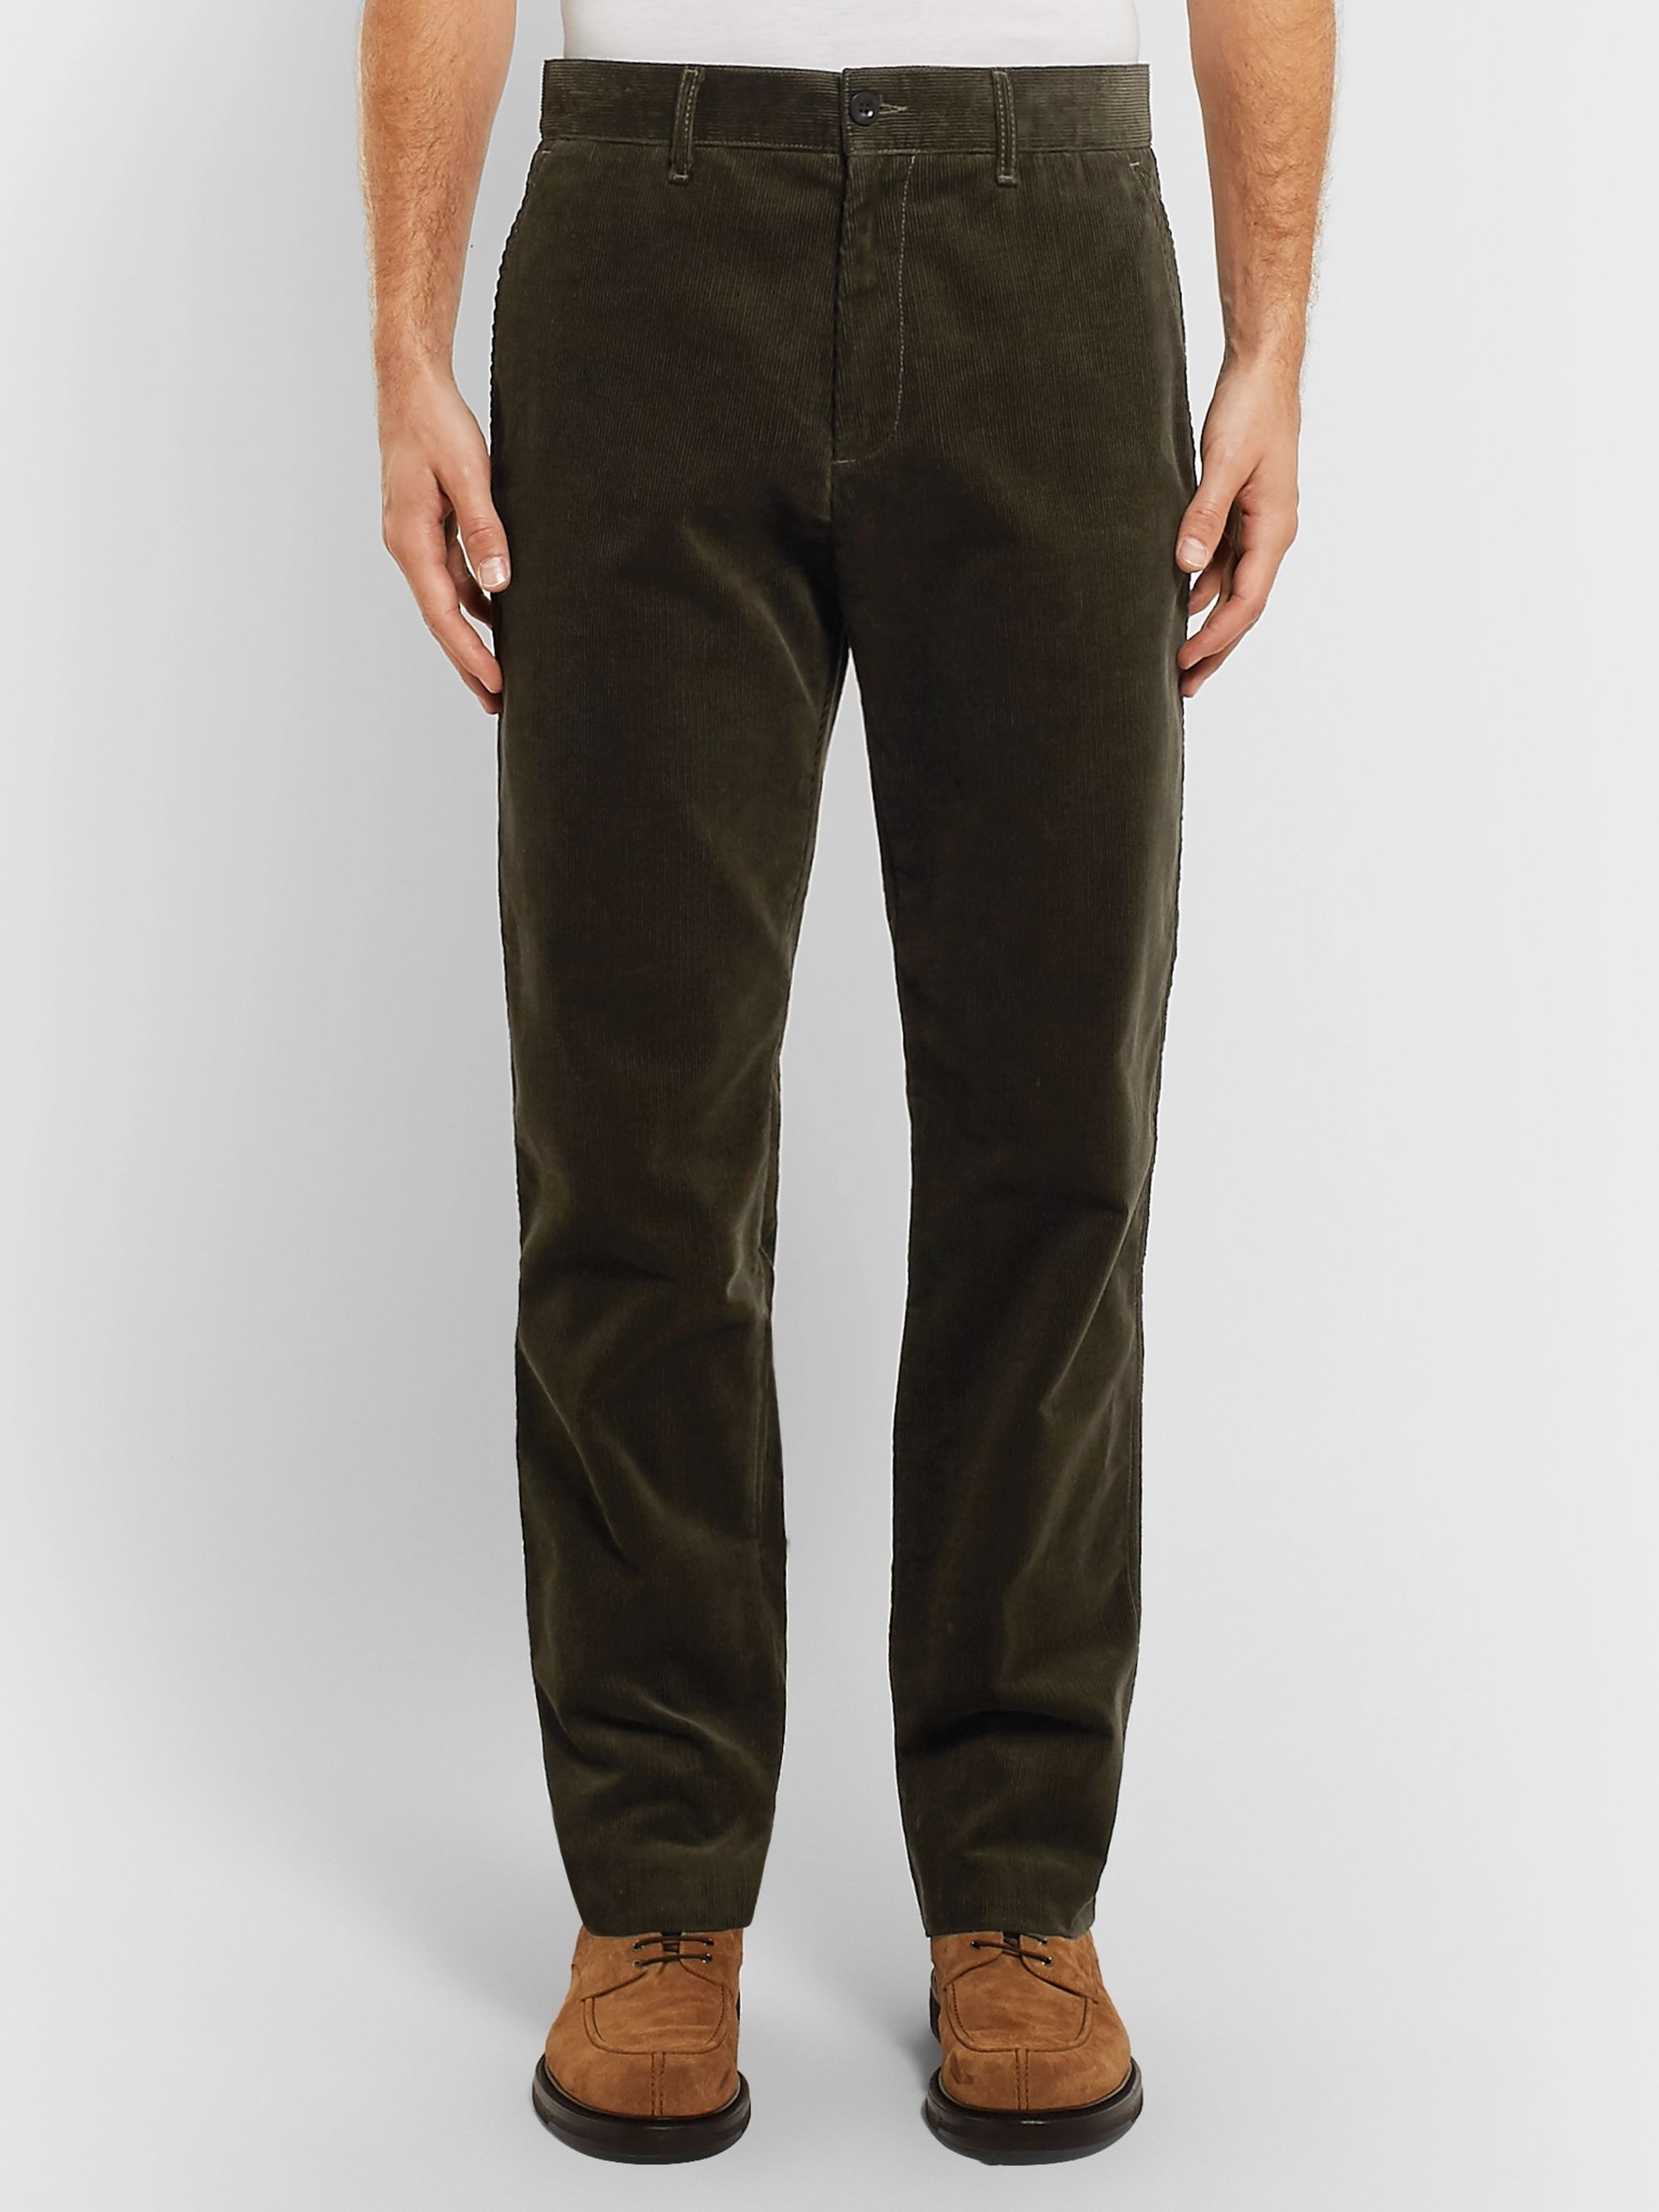 Mr P. Army-Green Cotton-Corduroy Trousers